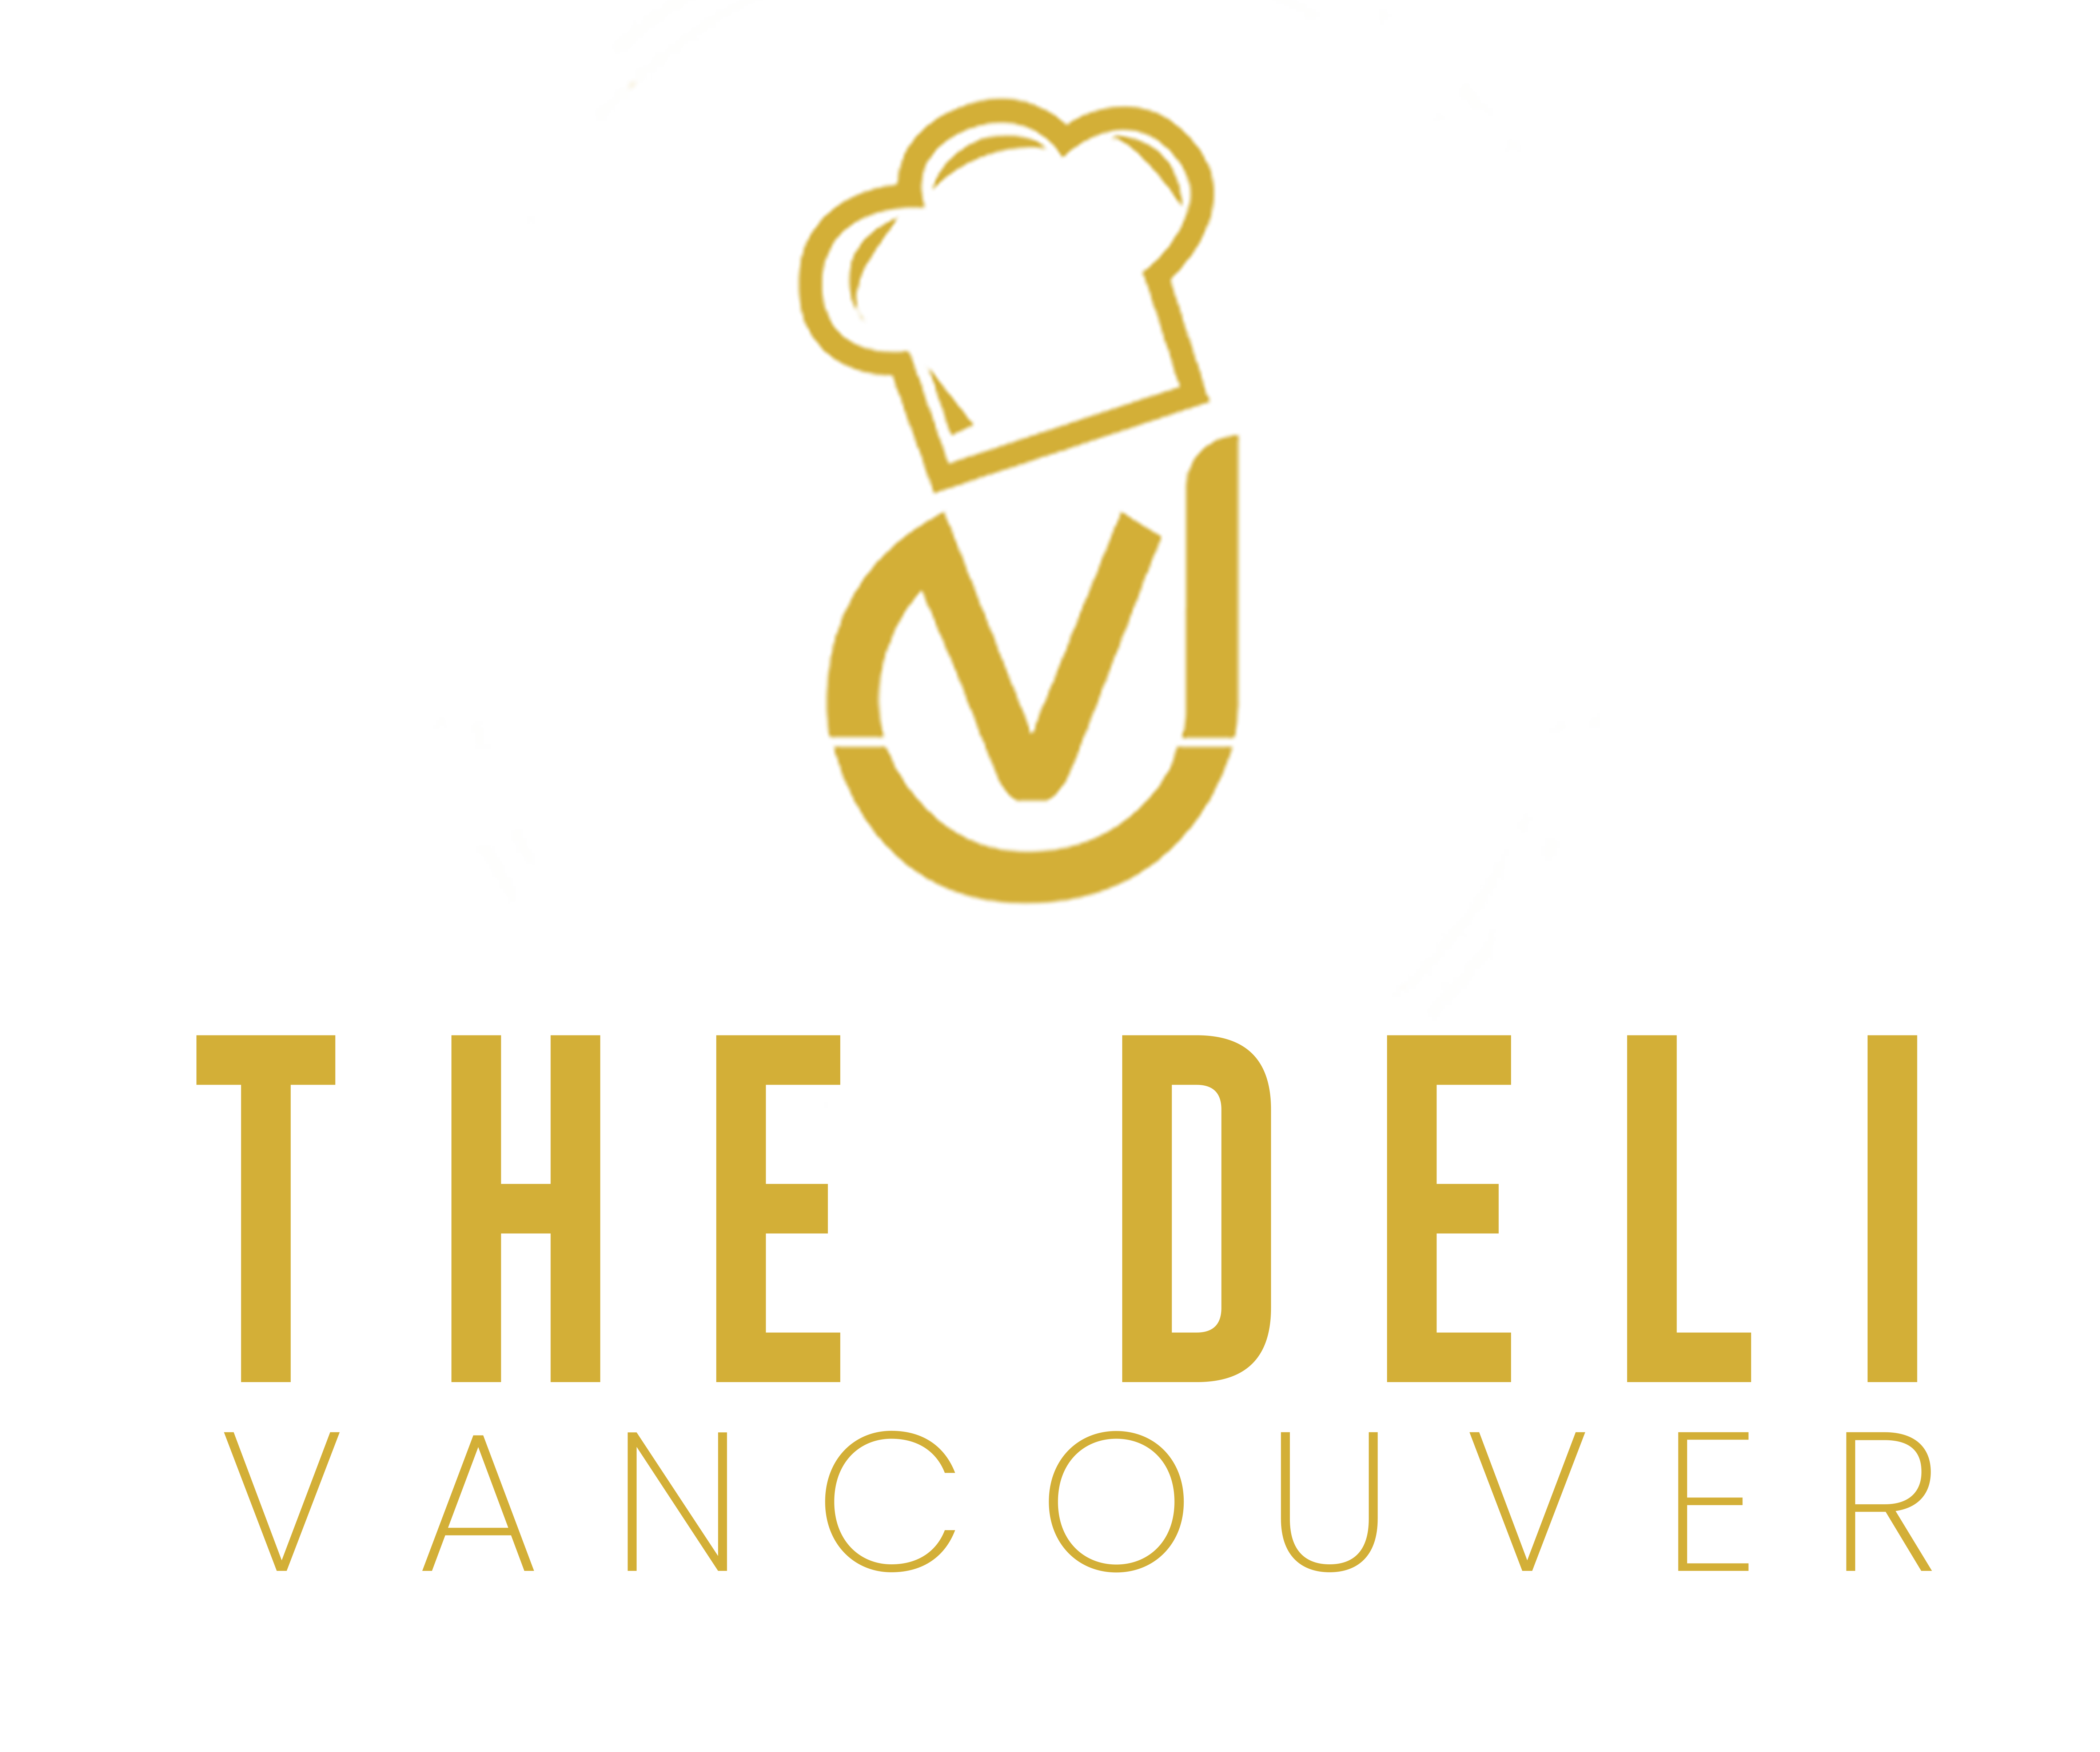 TheDeliVancouver